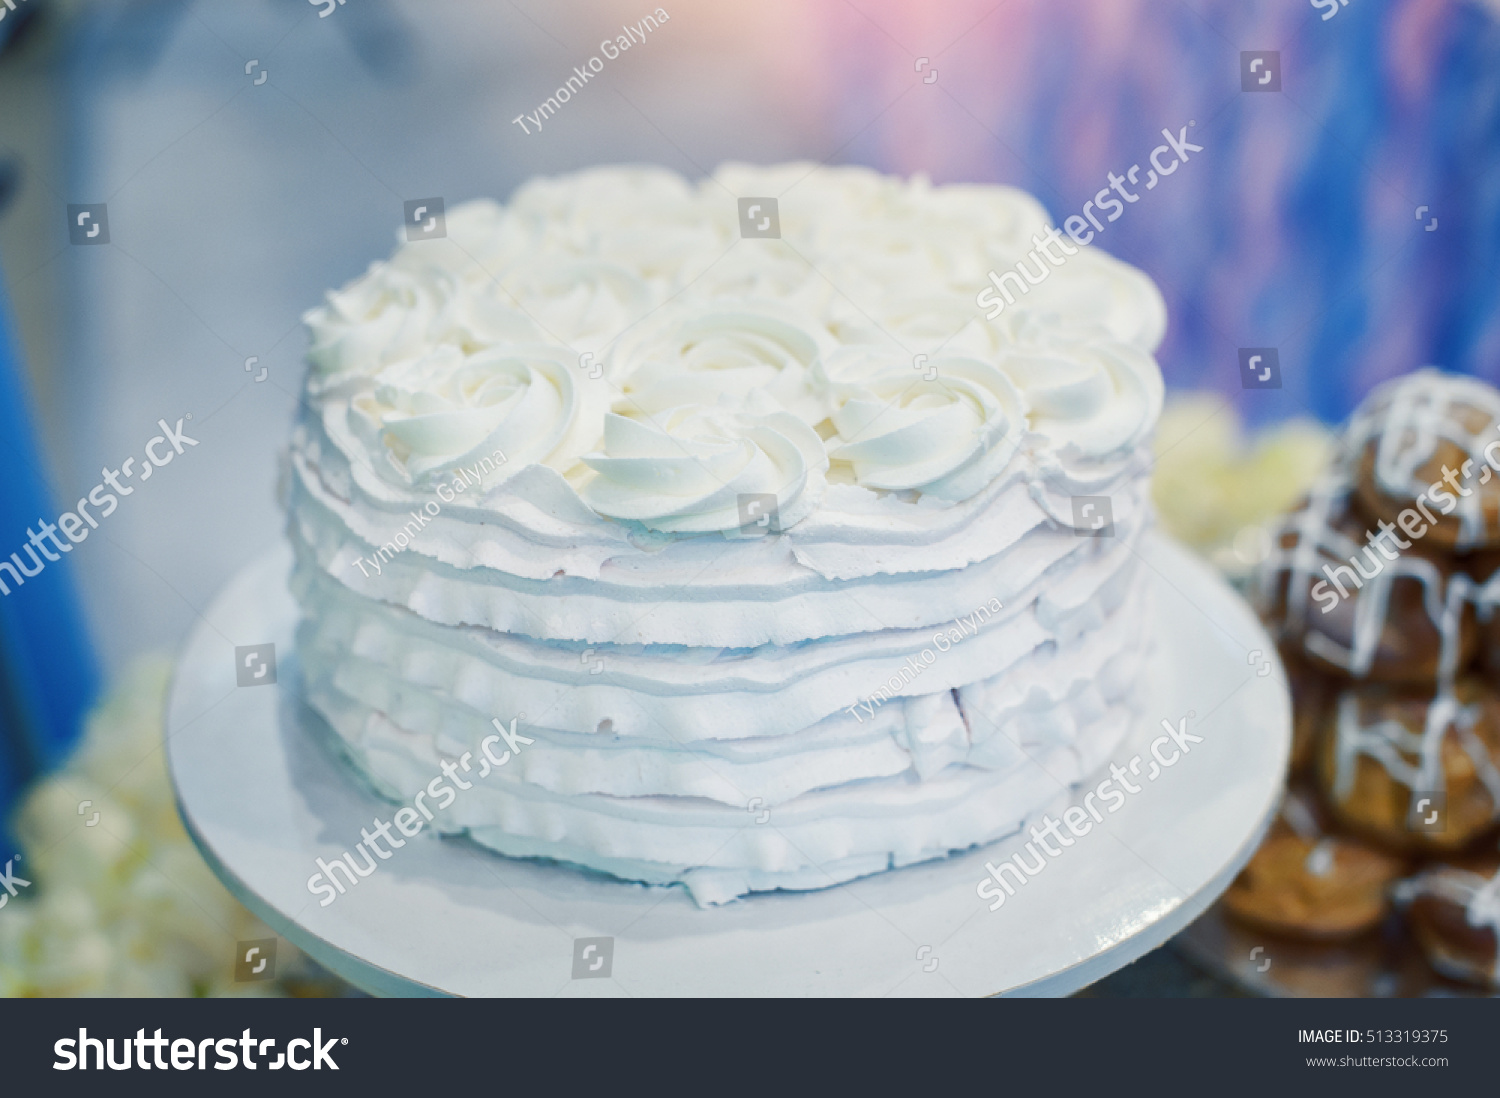 Beautiful white wedding cake flowers on stock photo 513319375 beautiful white wedding cake with flowers on a table izmirmasajfo Images